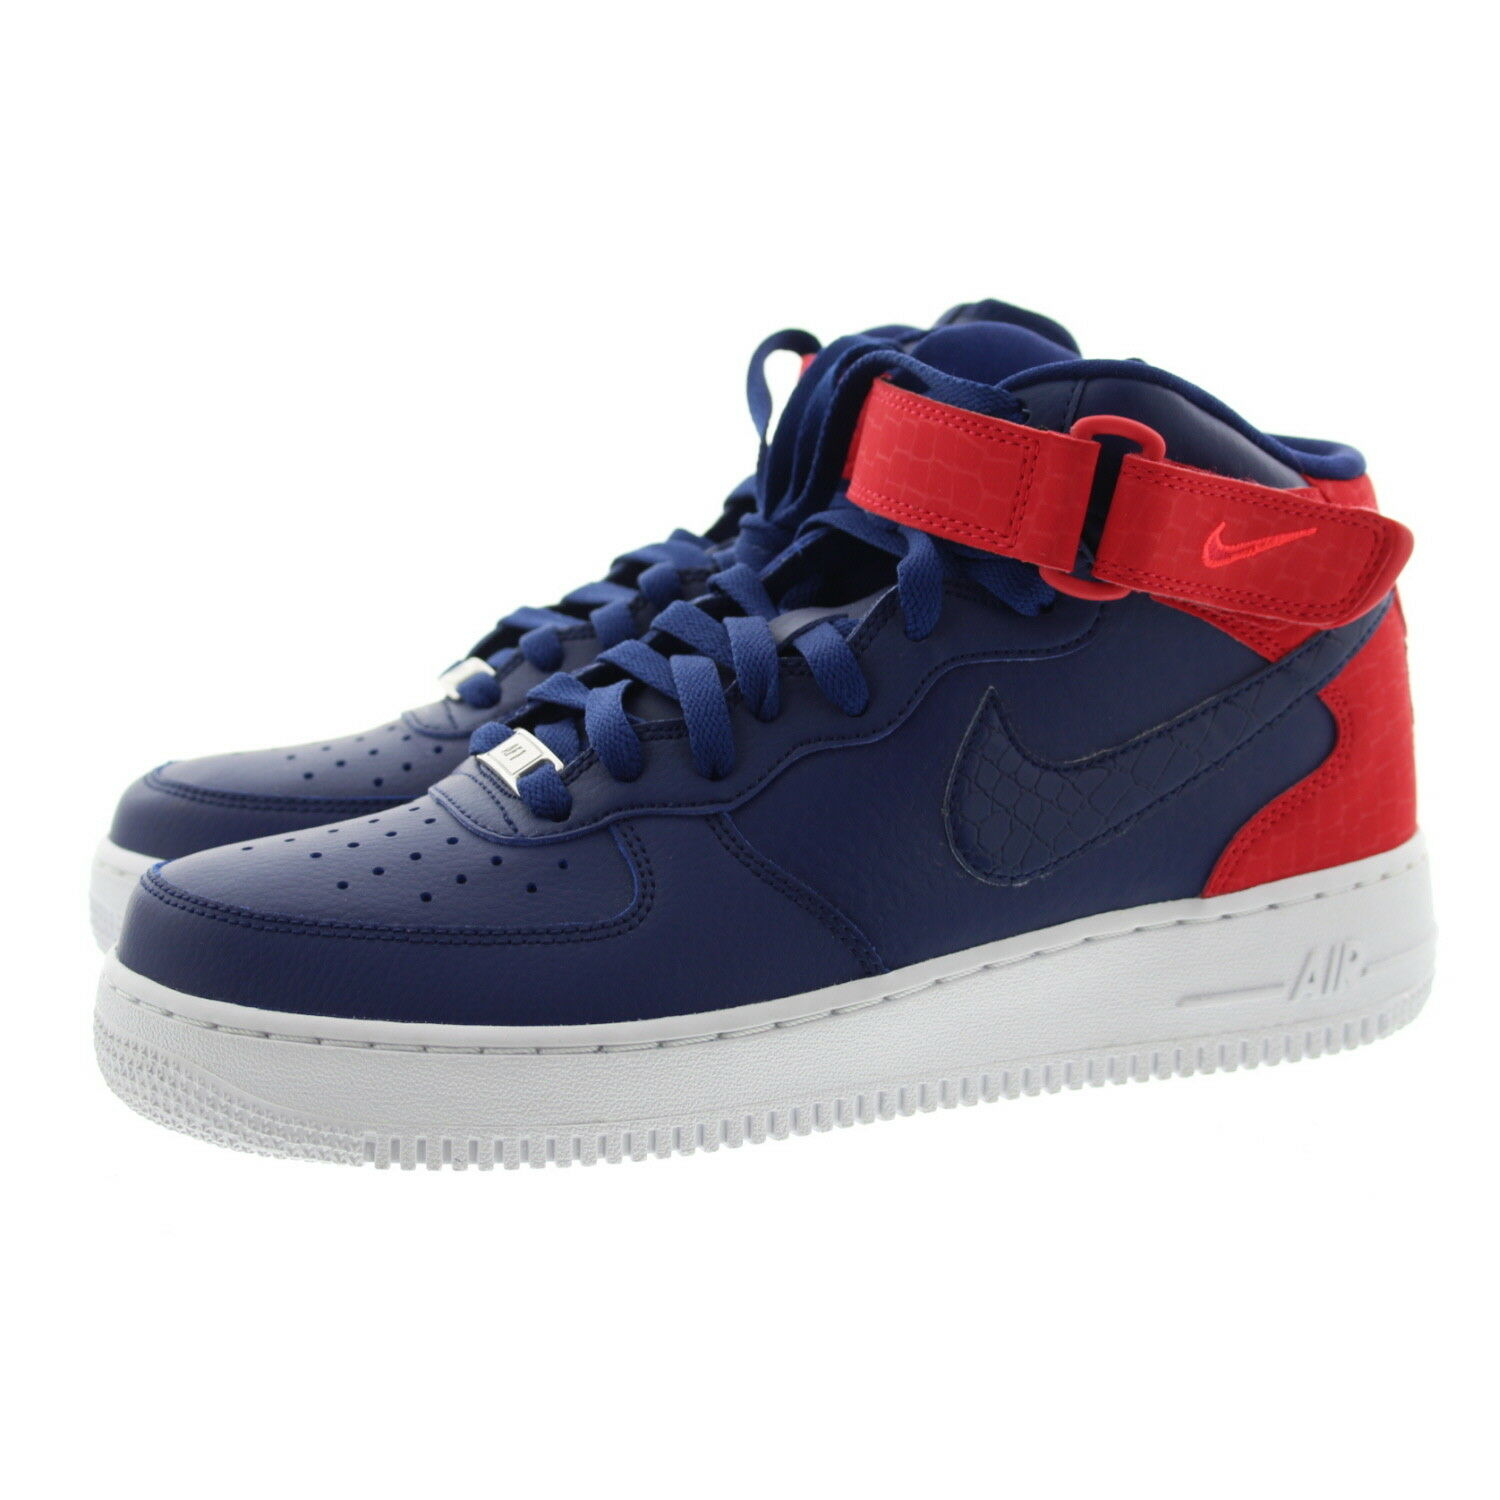 Nike 818596-400 Womens Air Force 1 Mid Top Patriotic Basketball shoes Sneakers